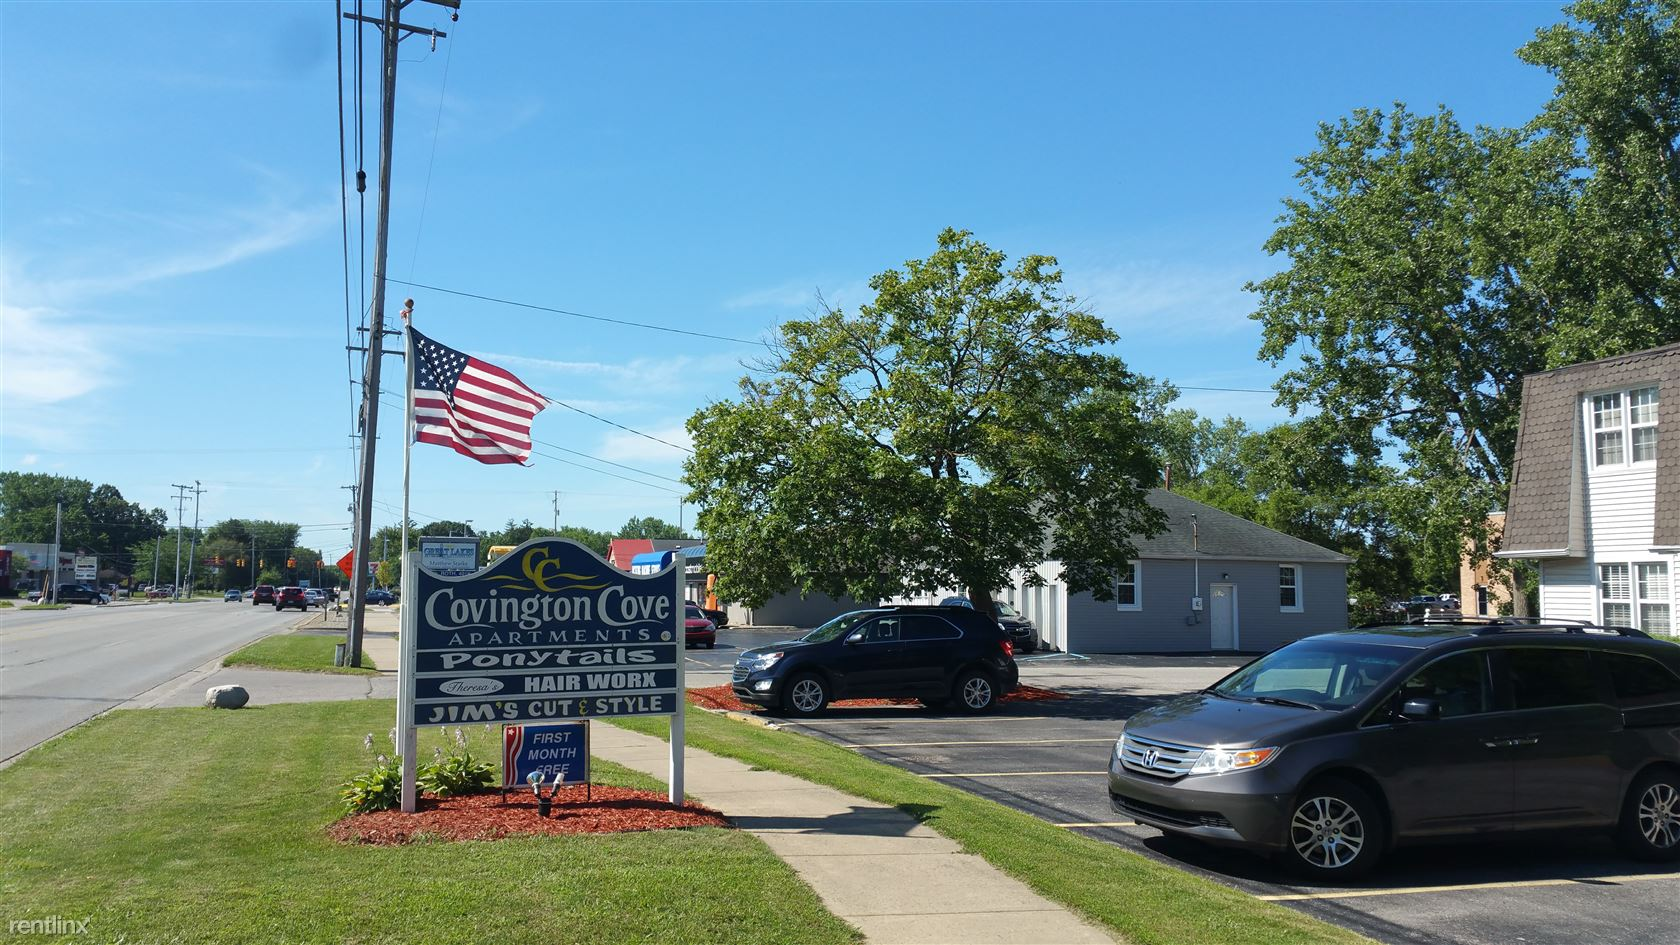 Covington Cove Apartments